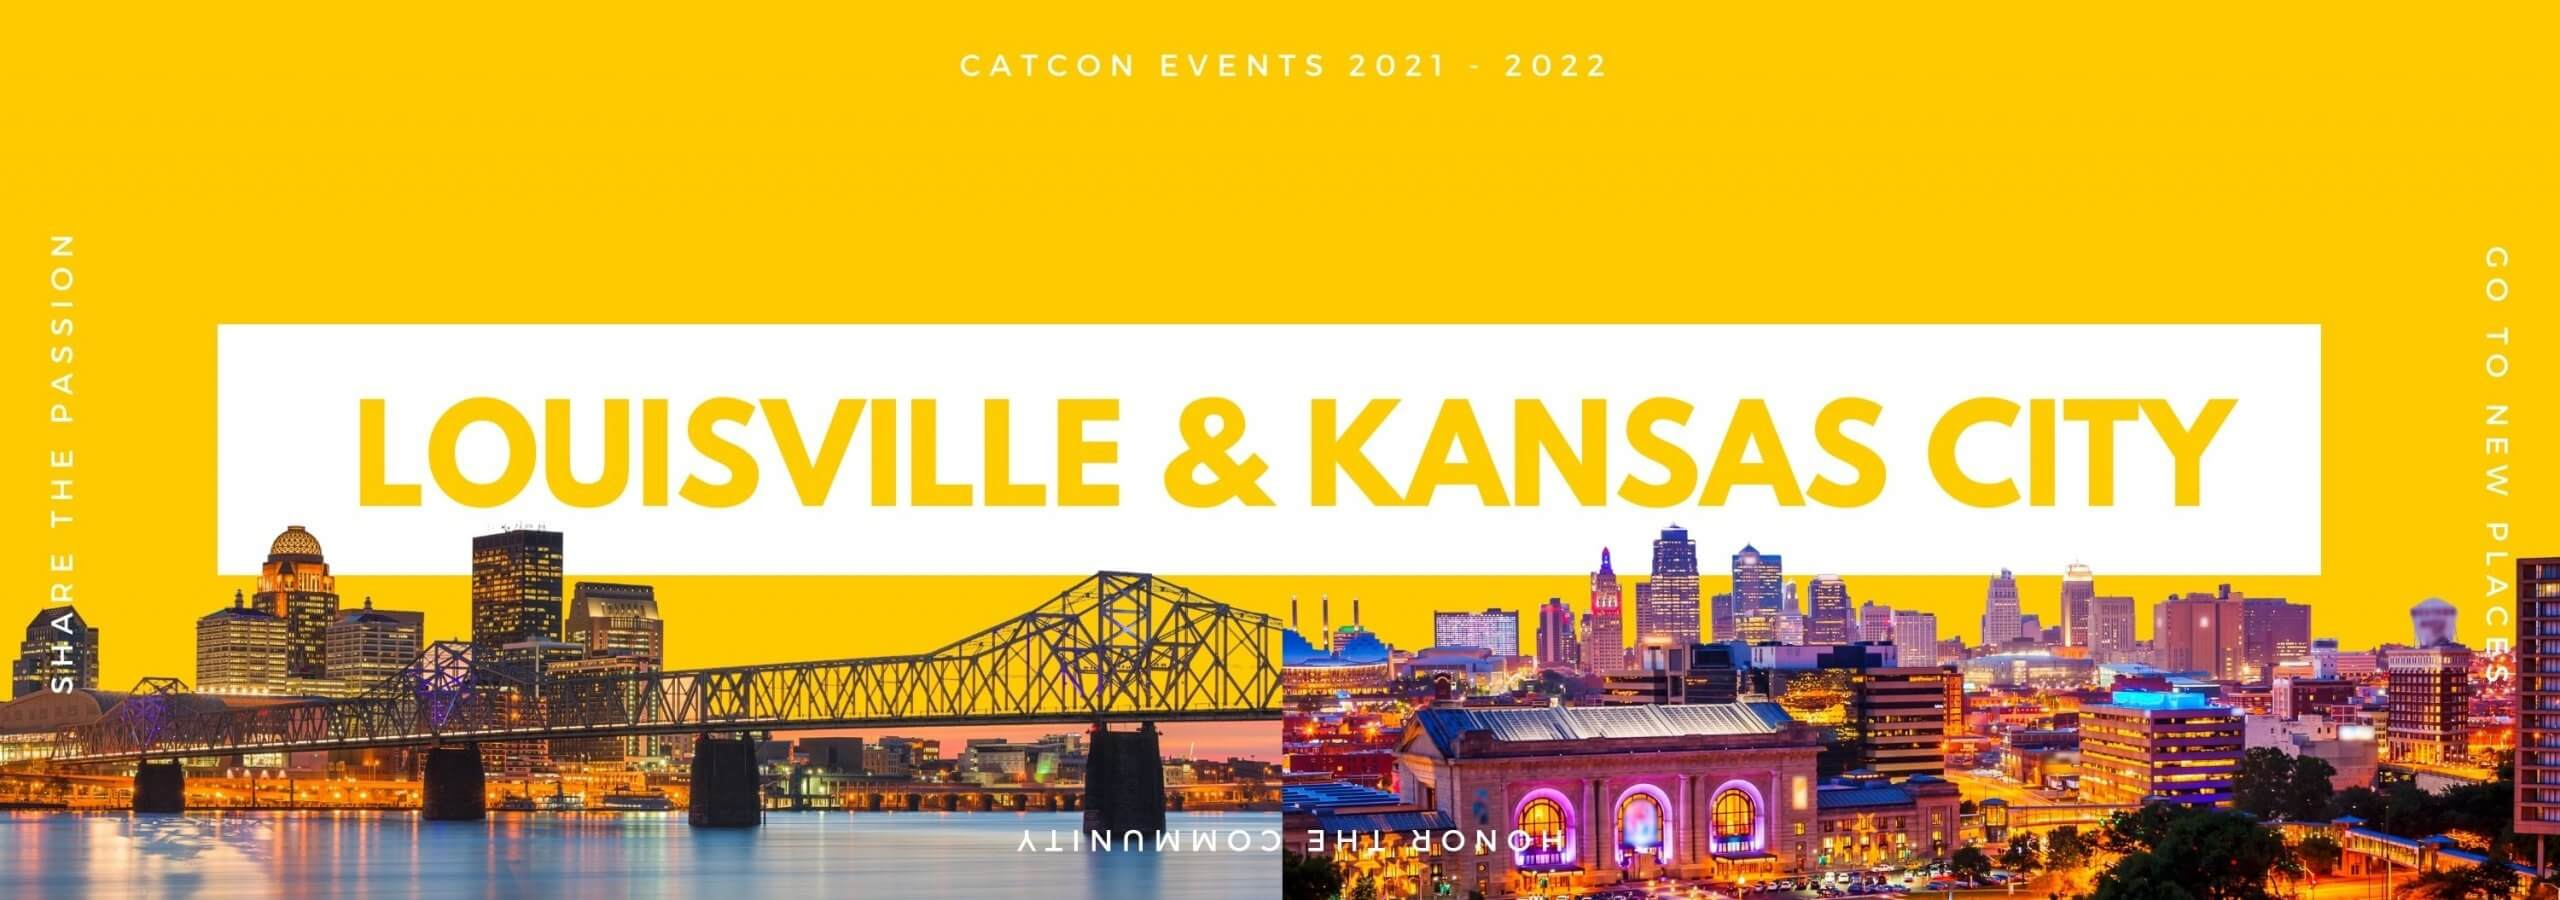 [object object] The Official Catfish Conference® 2022 | in Kansas City (MO) & Louisville (KY) CatCon Speakers Banner scaled